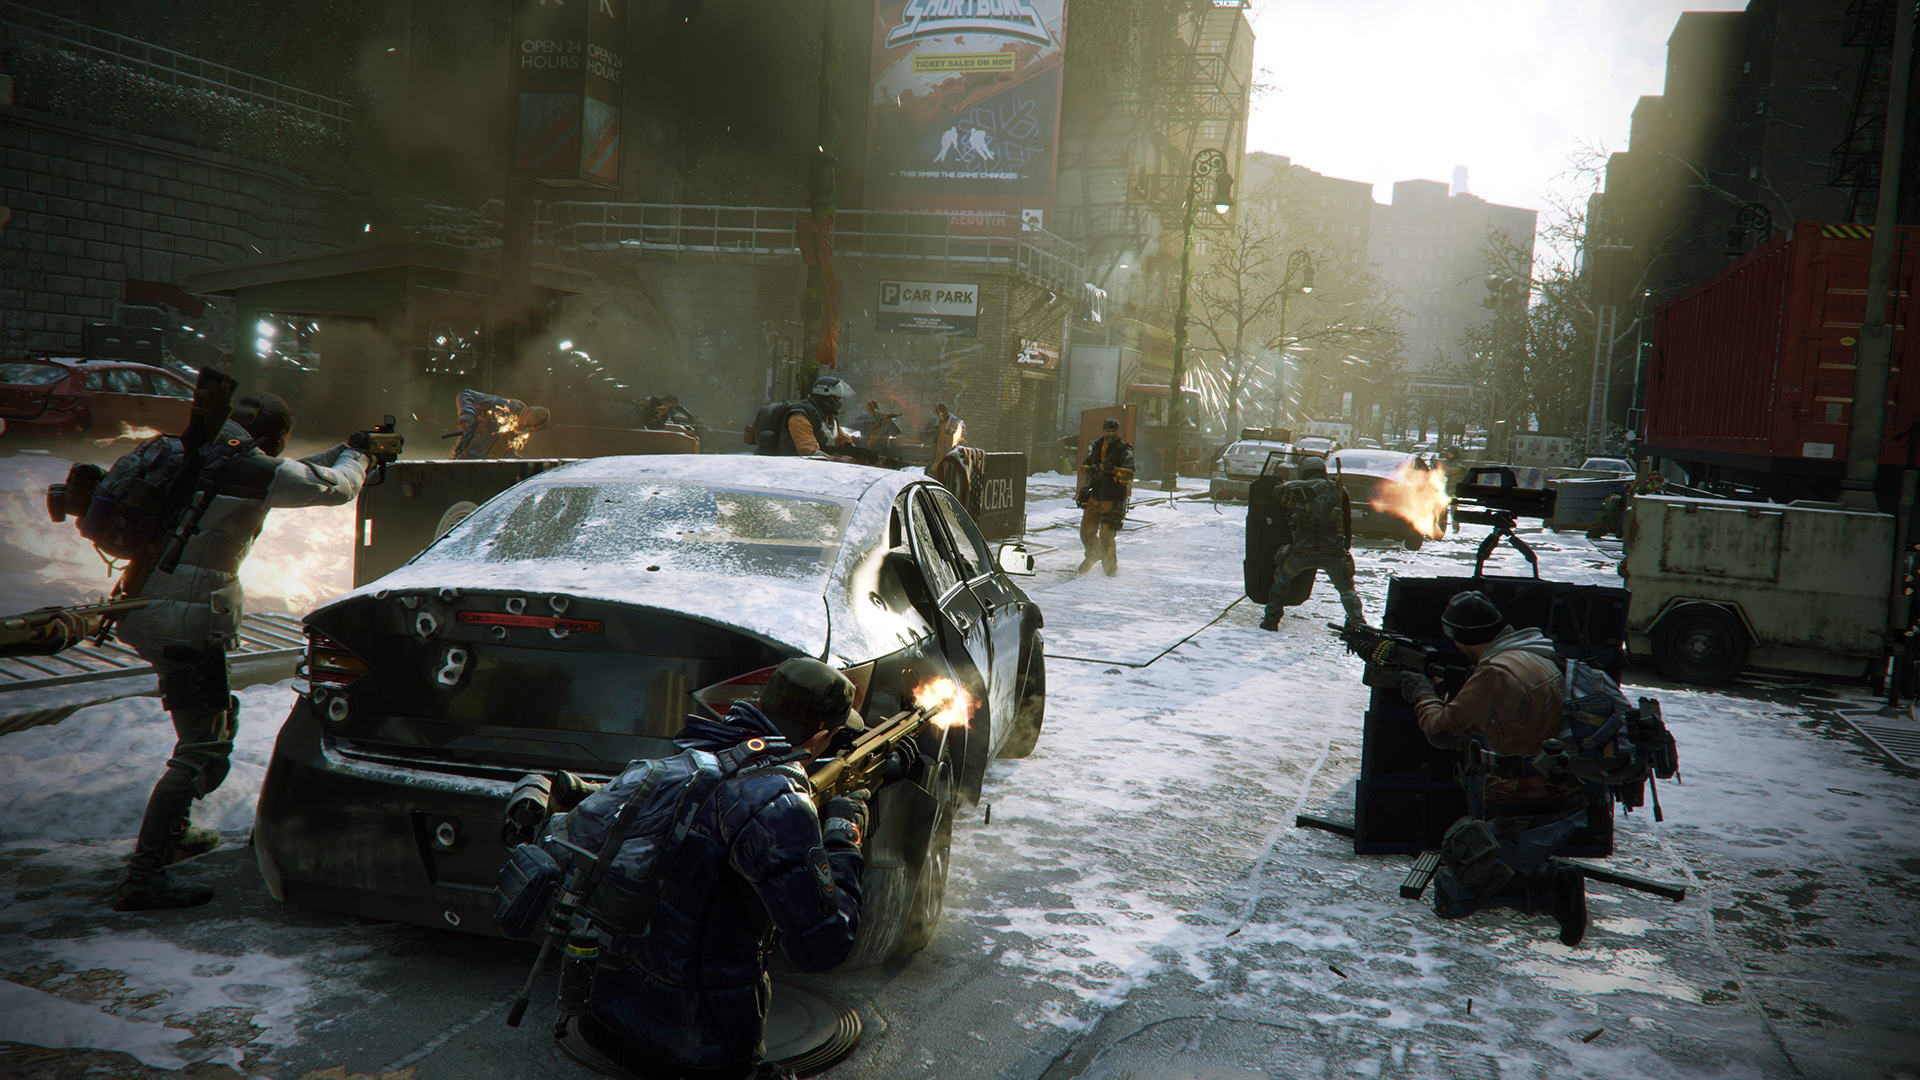 TCTD 1601 web screenshot team street encounter We Had An Exclusive Look At The Division Ahead Of Release Day